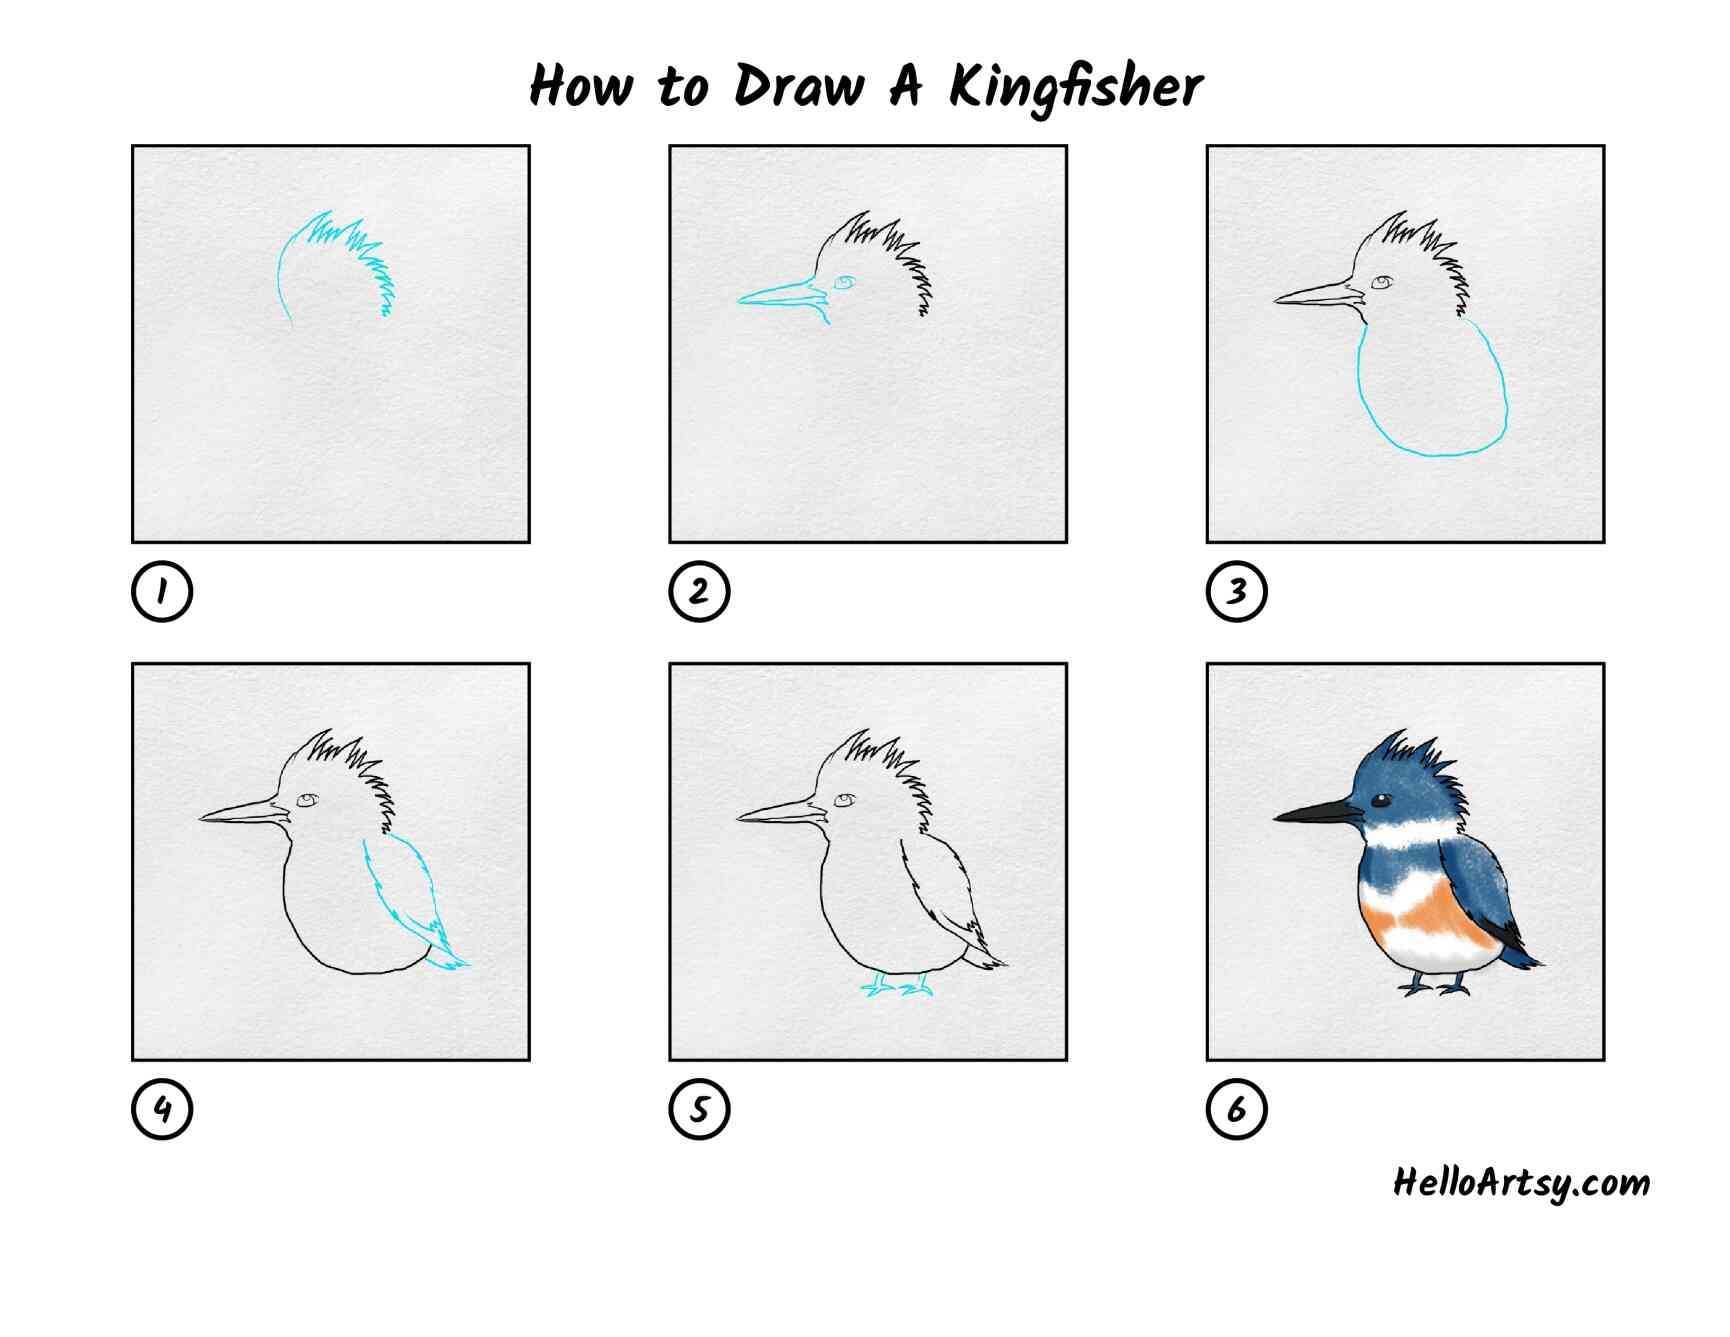 How To Draw Kingfisher: All Steps